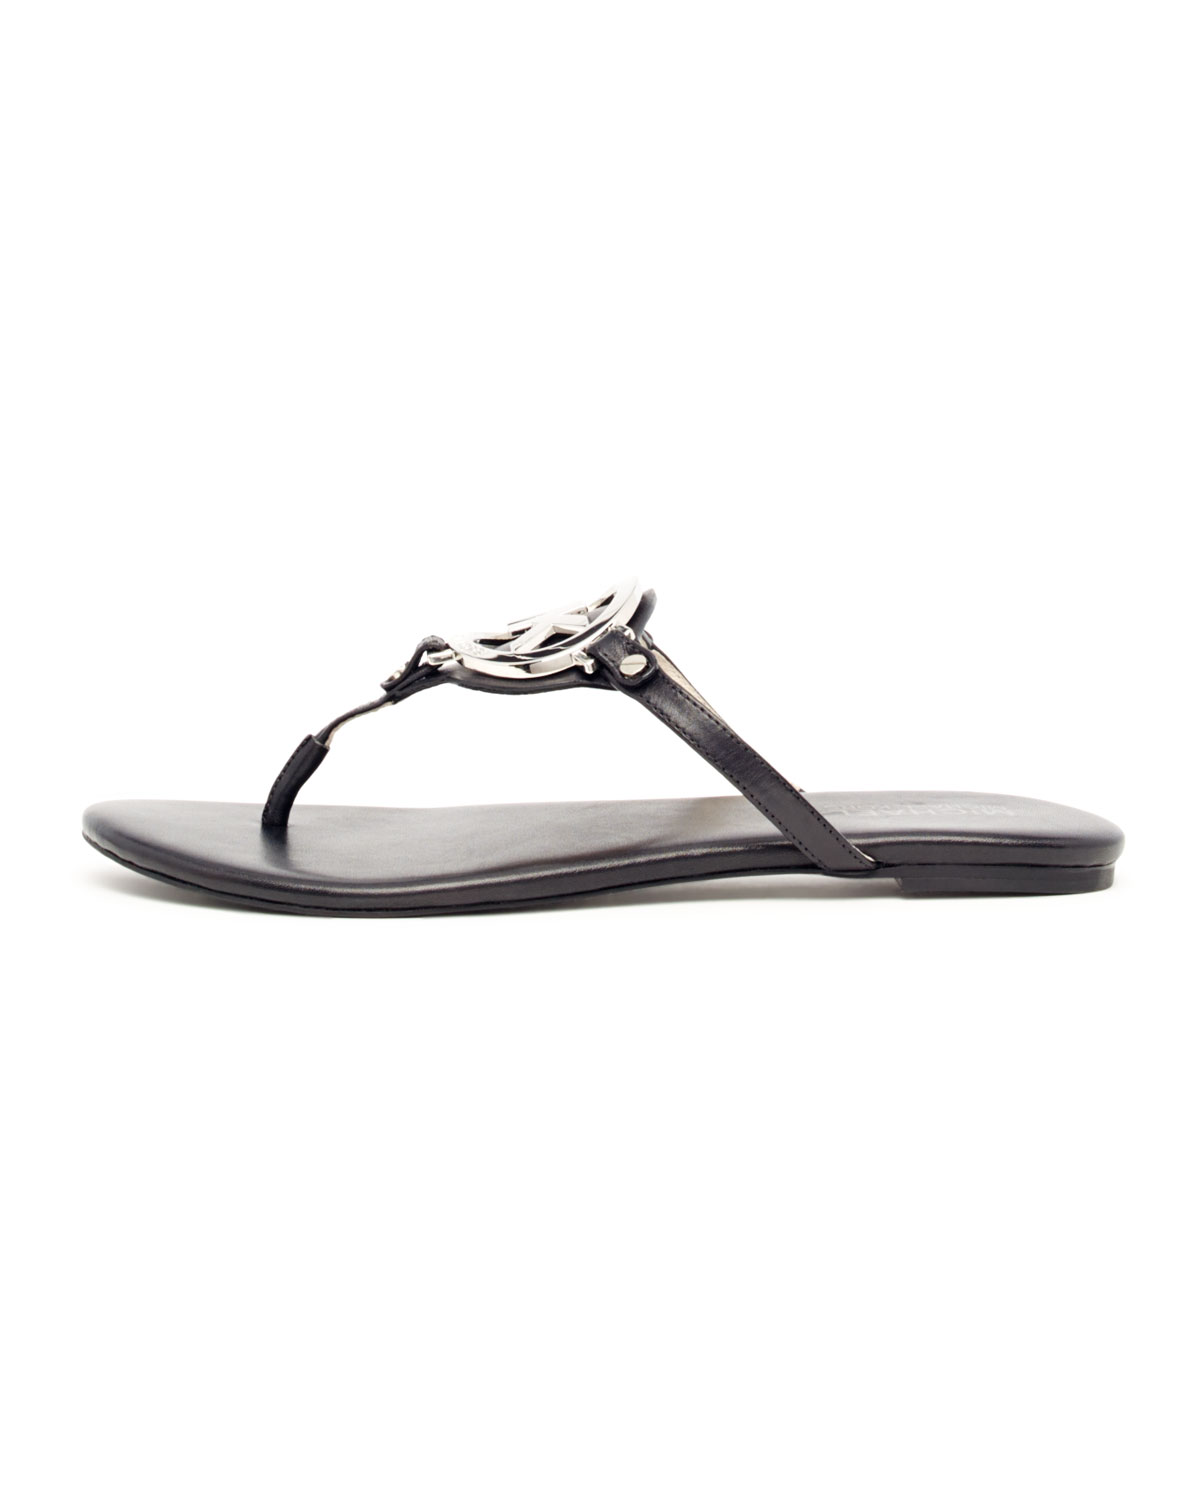 d21164f72f56 Lyst - Michael Kors Melodie Logo Thong Sandals in Black